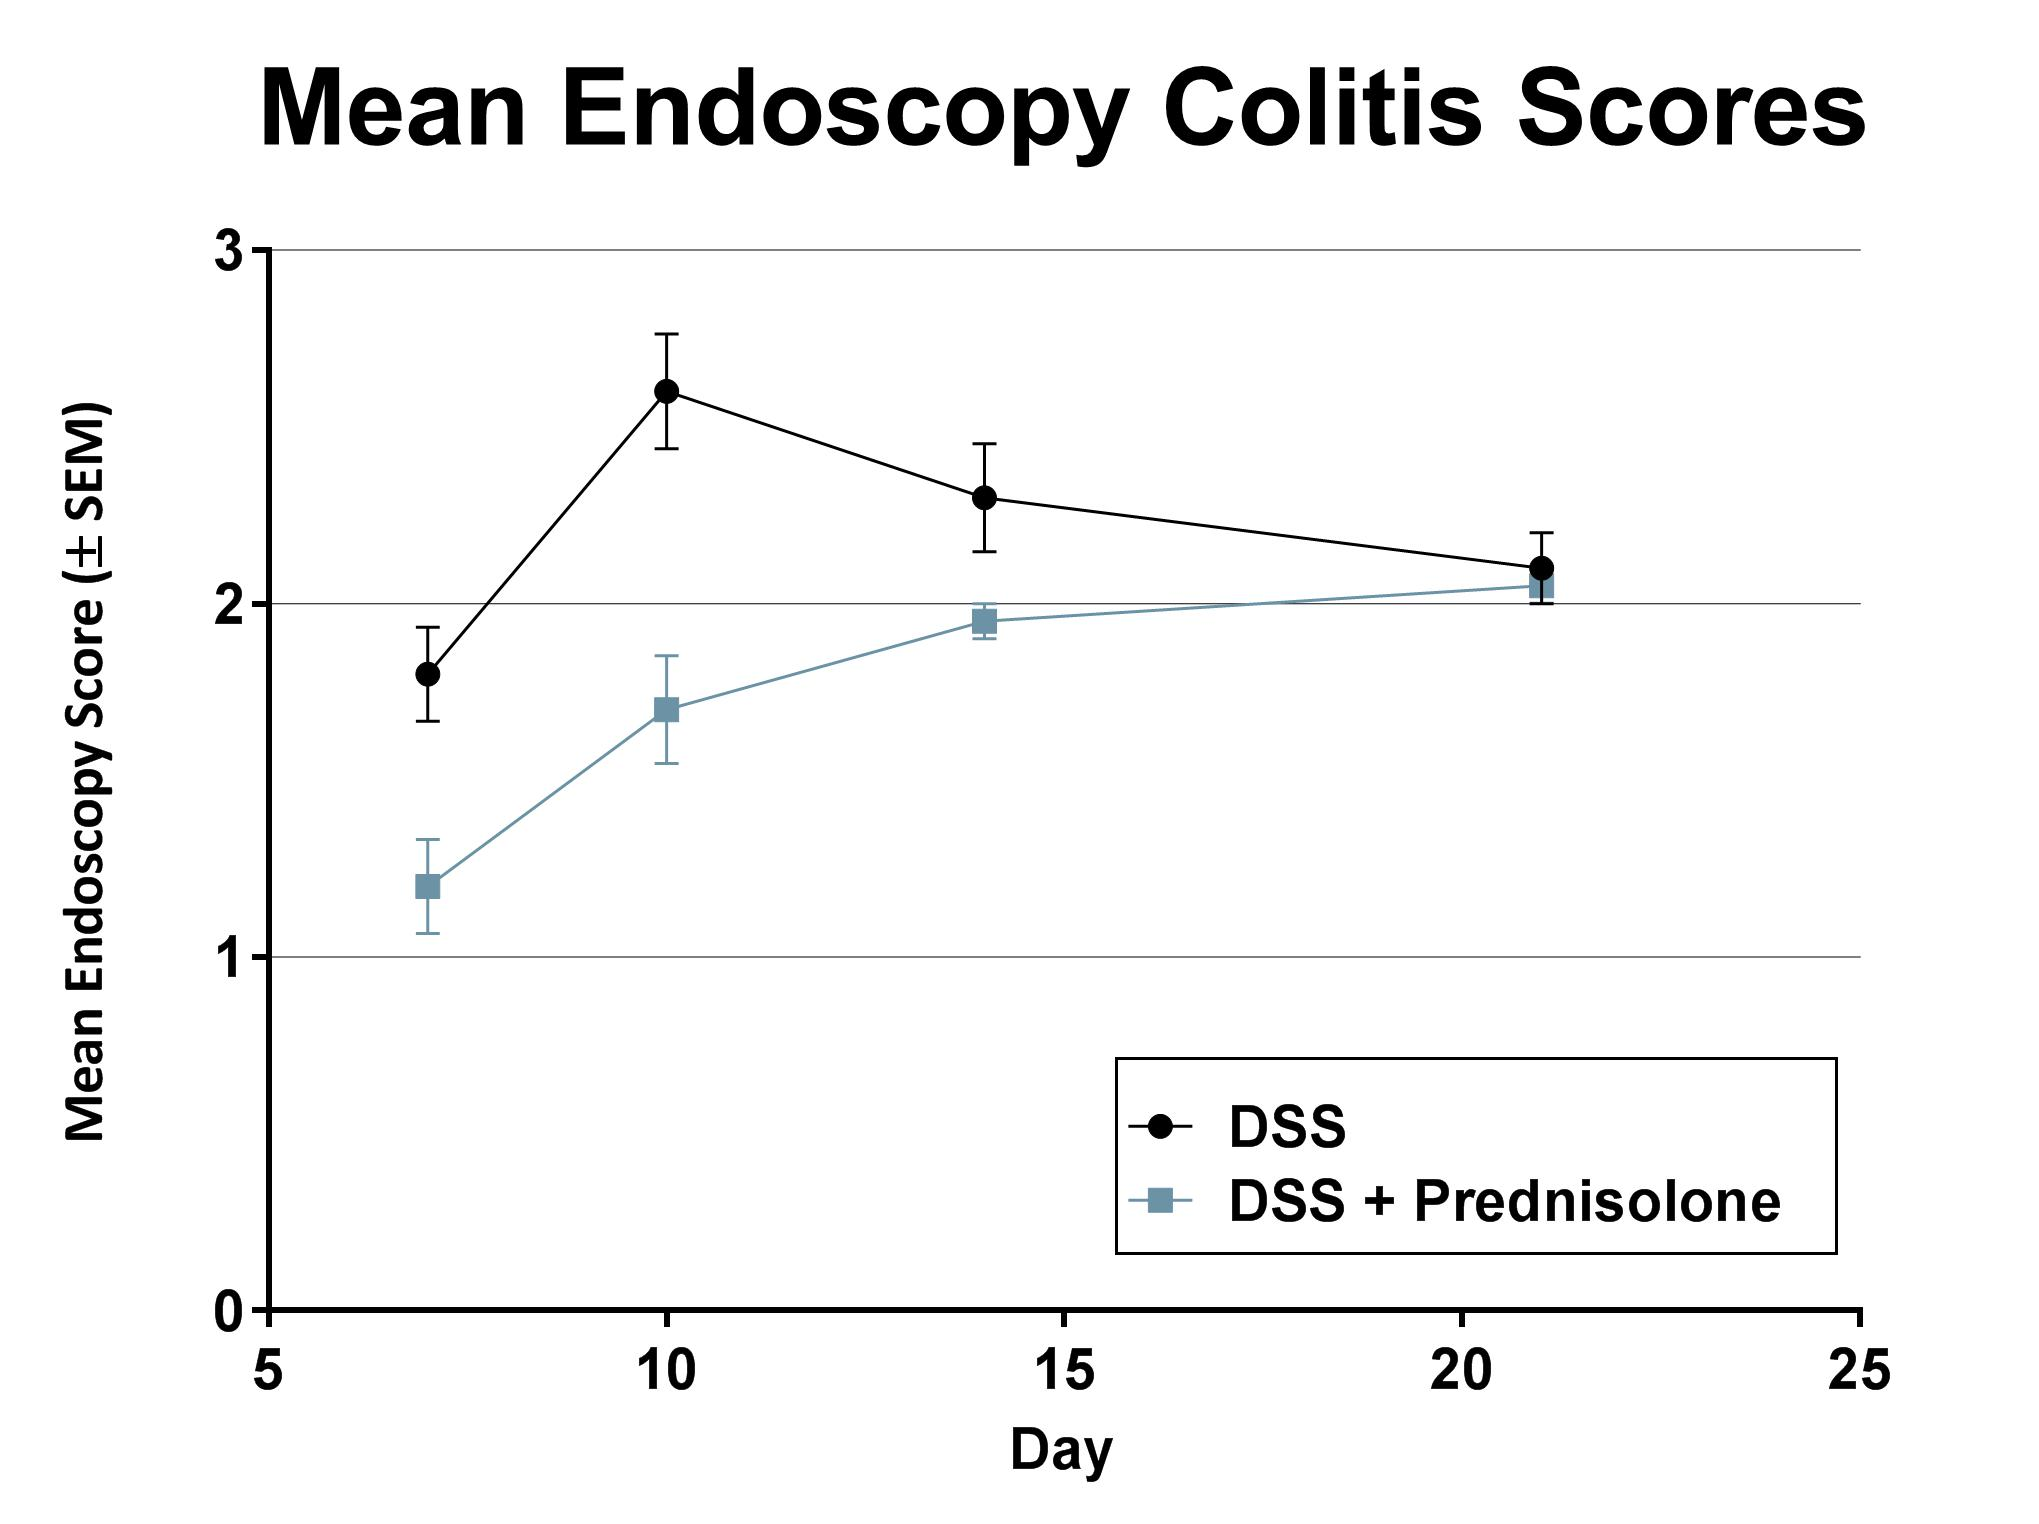 Endoscopy colitis severity scores resulting from acute DSS exposure